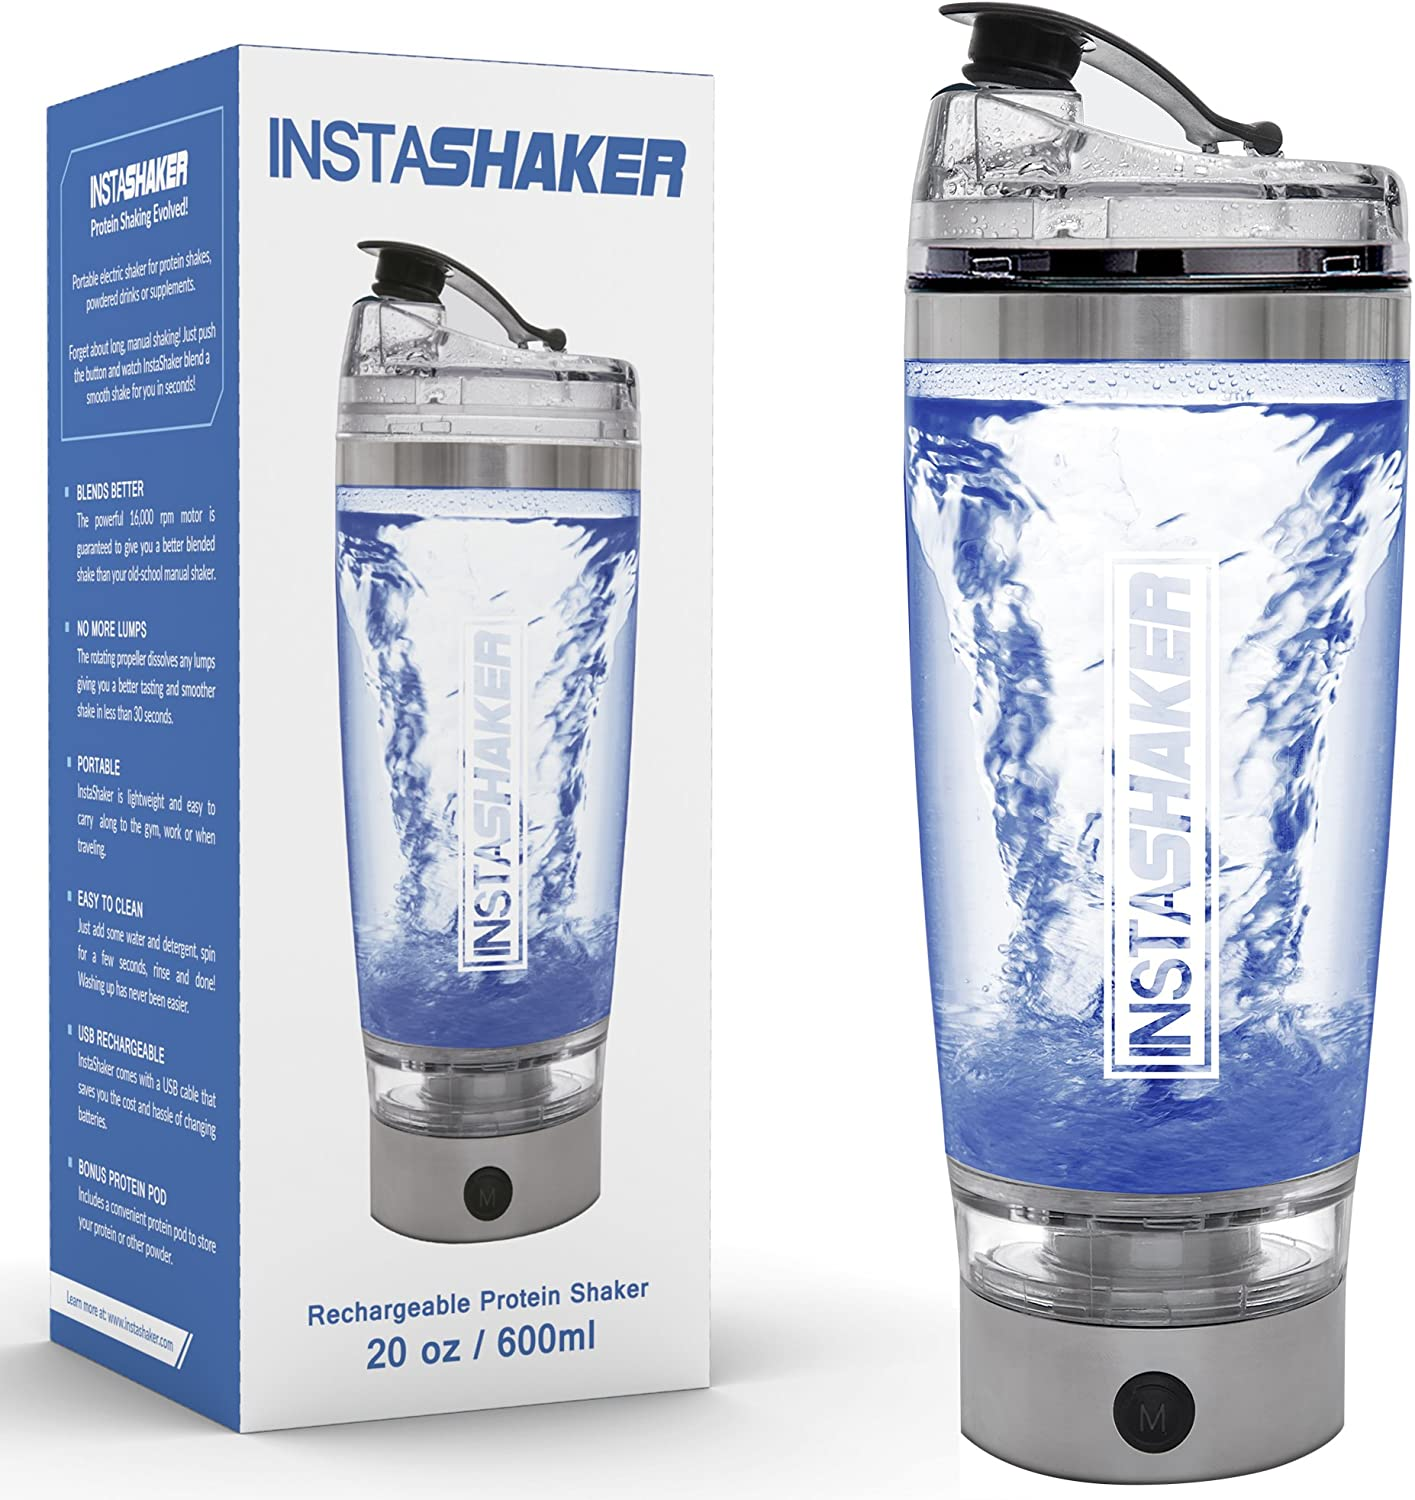 InstaShaker (New Model) Protein Shaker Bottle 20 oz. Vortex Mixer Cup. USB Rechargeable. Complimentary Powder Storage Compartment